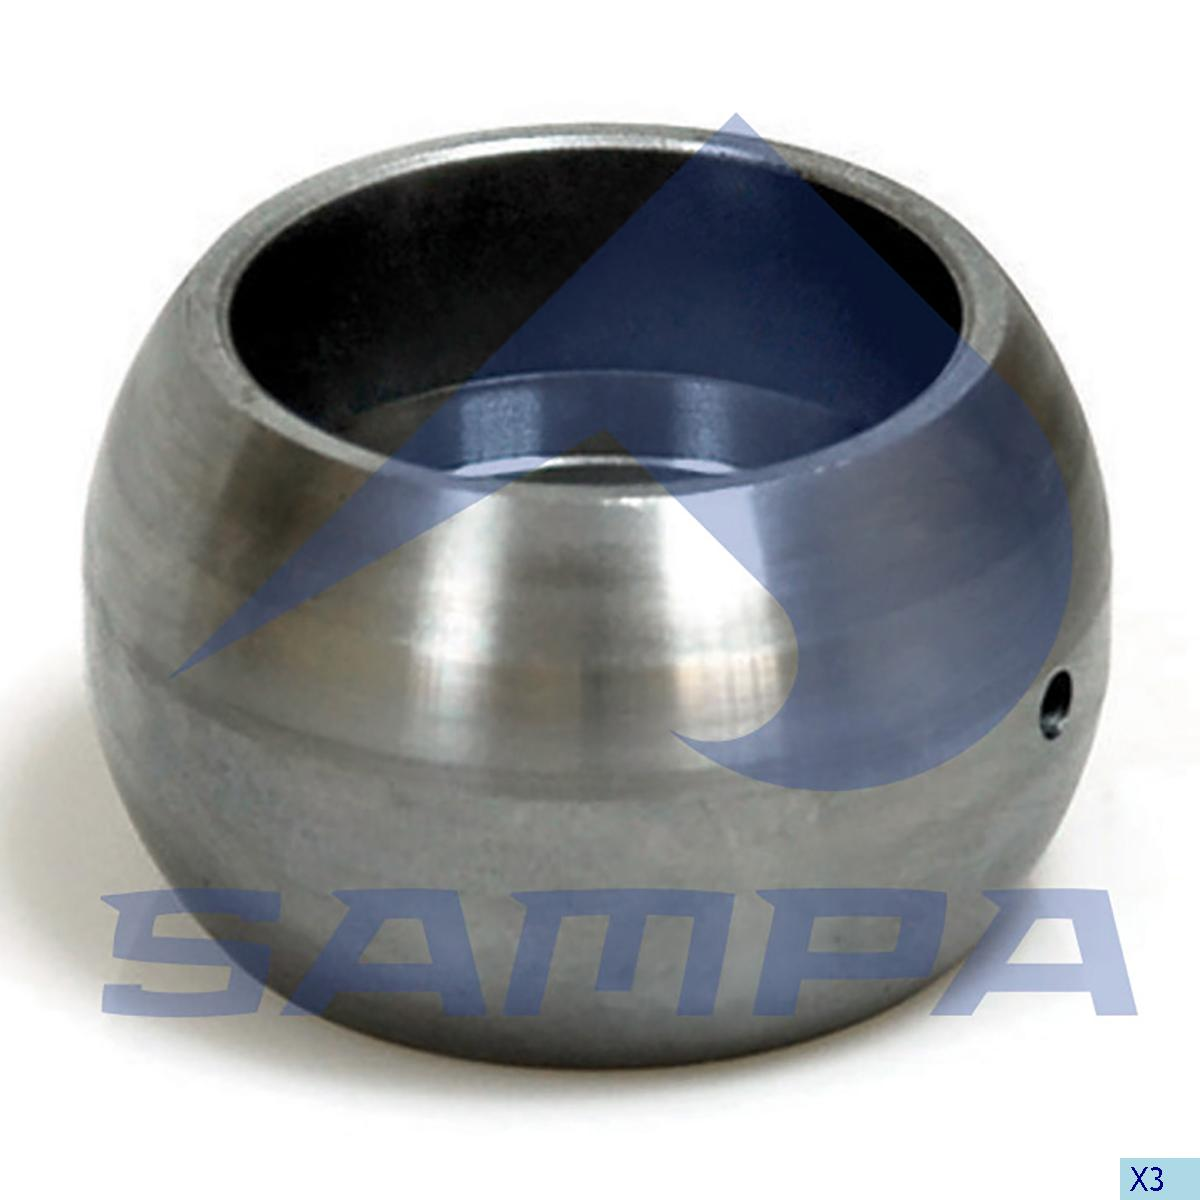 Spherical Bearing, Brake Cam Shaft, Bergische, Brake